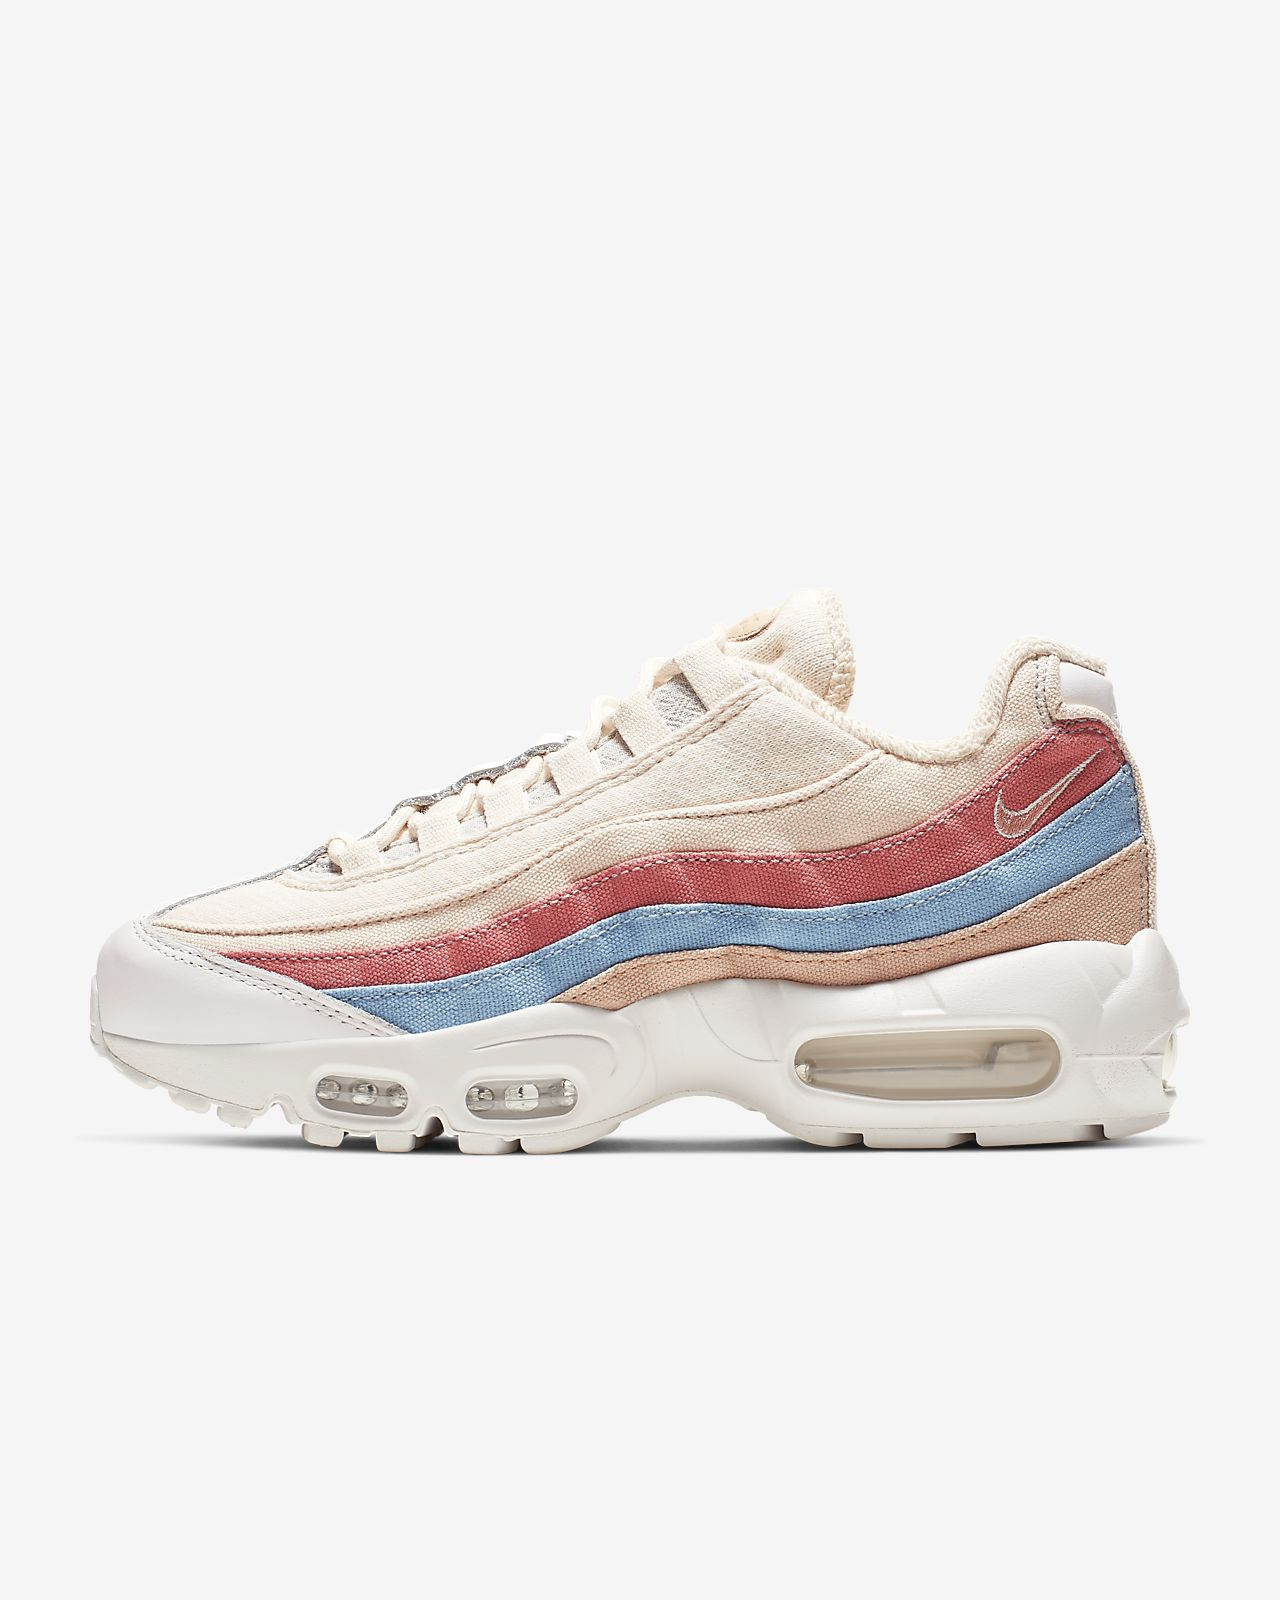 9b782df8265c8 Nike Air Max 95 QS Women s Shoe. Nike.com